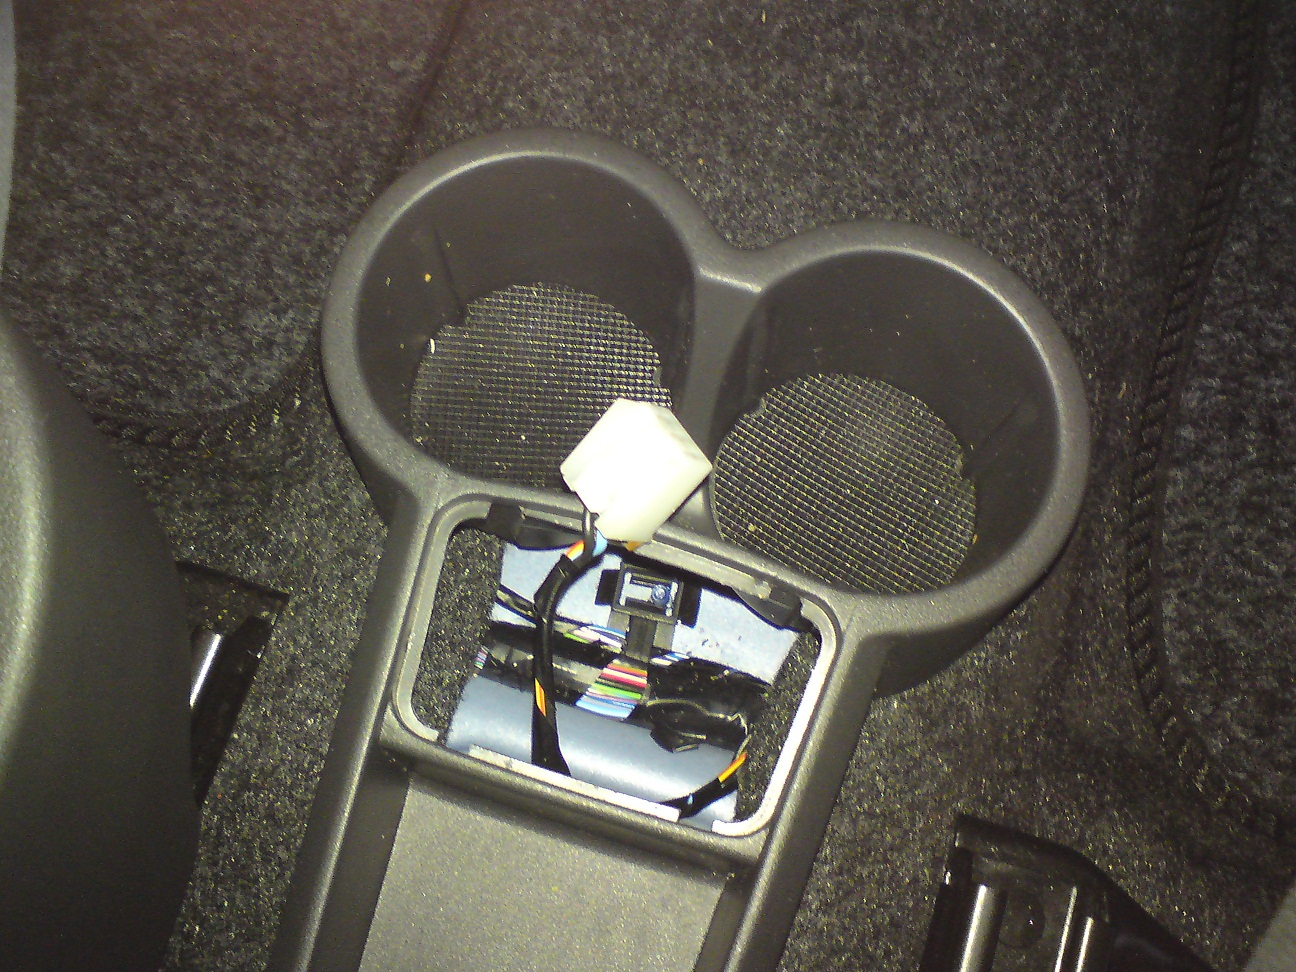 12v+02 the poorest company installing a 12v power socket in a fiat panda,Fiat Punto Fuse Box Cigarette Lighter